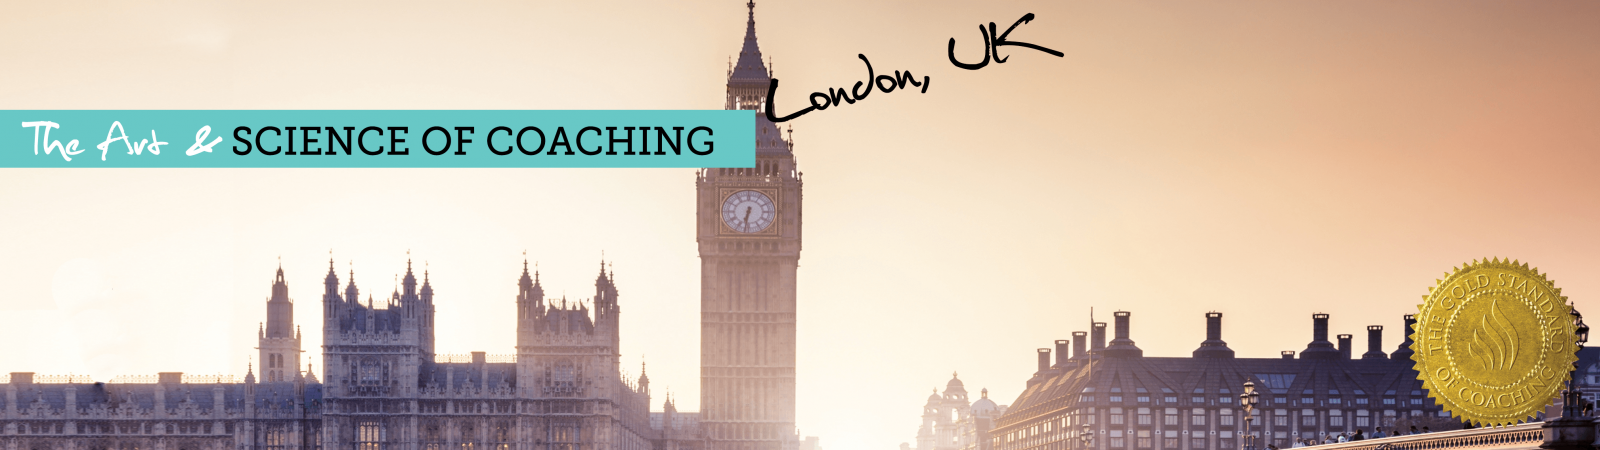 Become a Certified Coach in London, UK. Fast-Track On-Site Training Begins October 3, 2019.